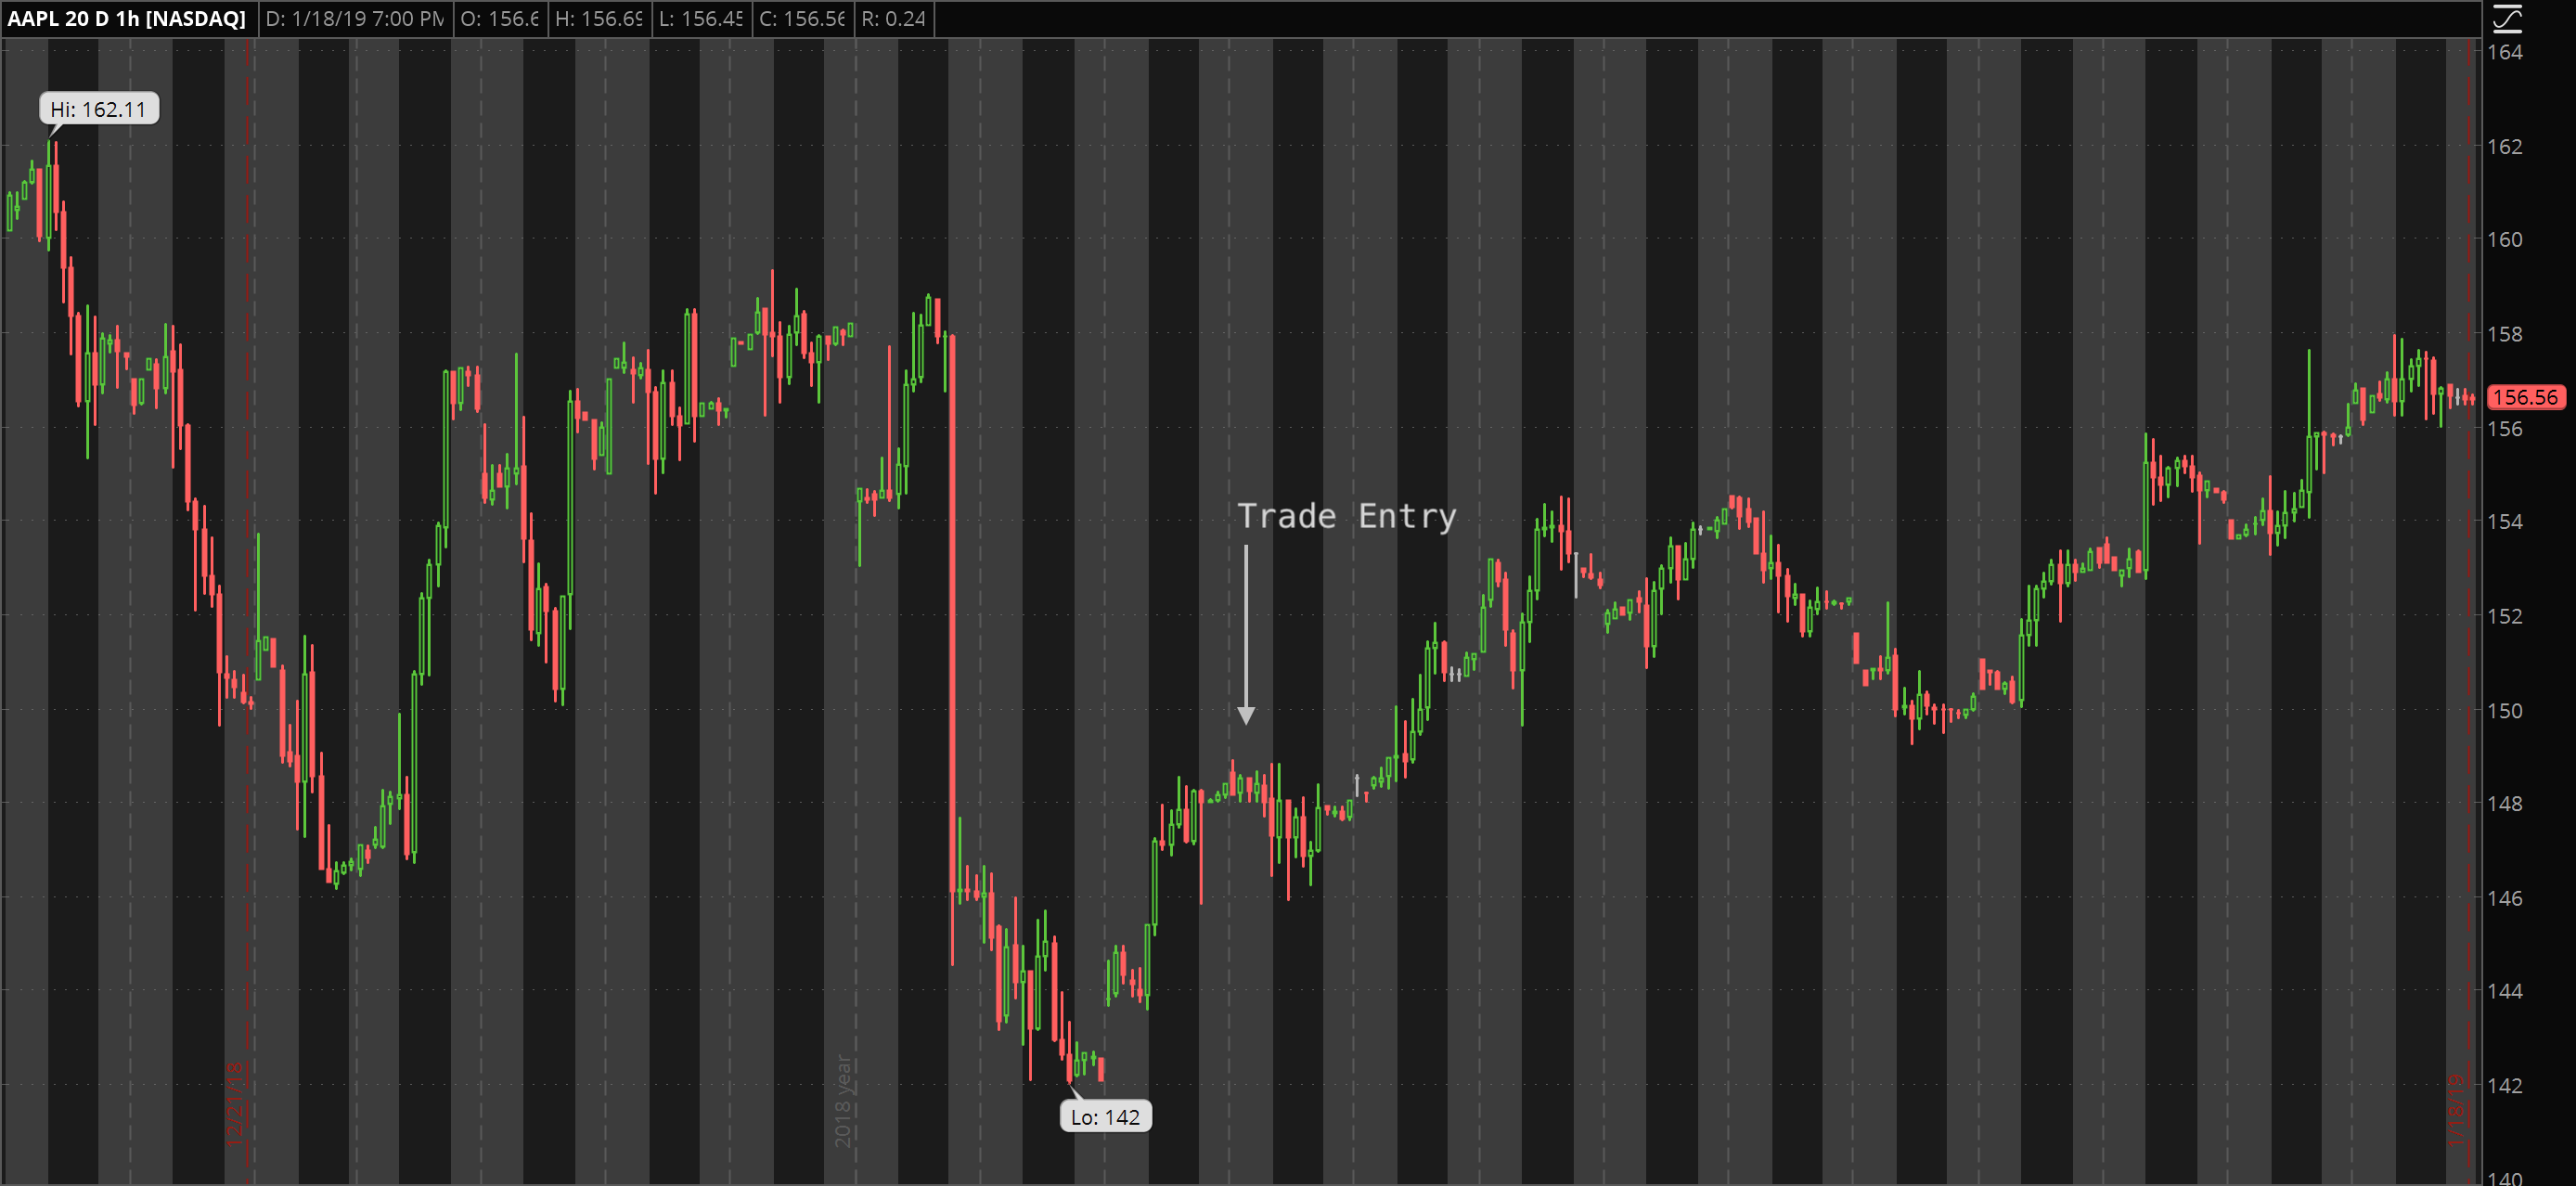 30 day chart of AAPL noting entry points